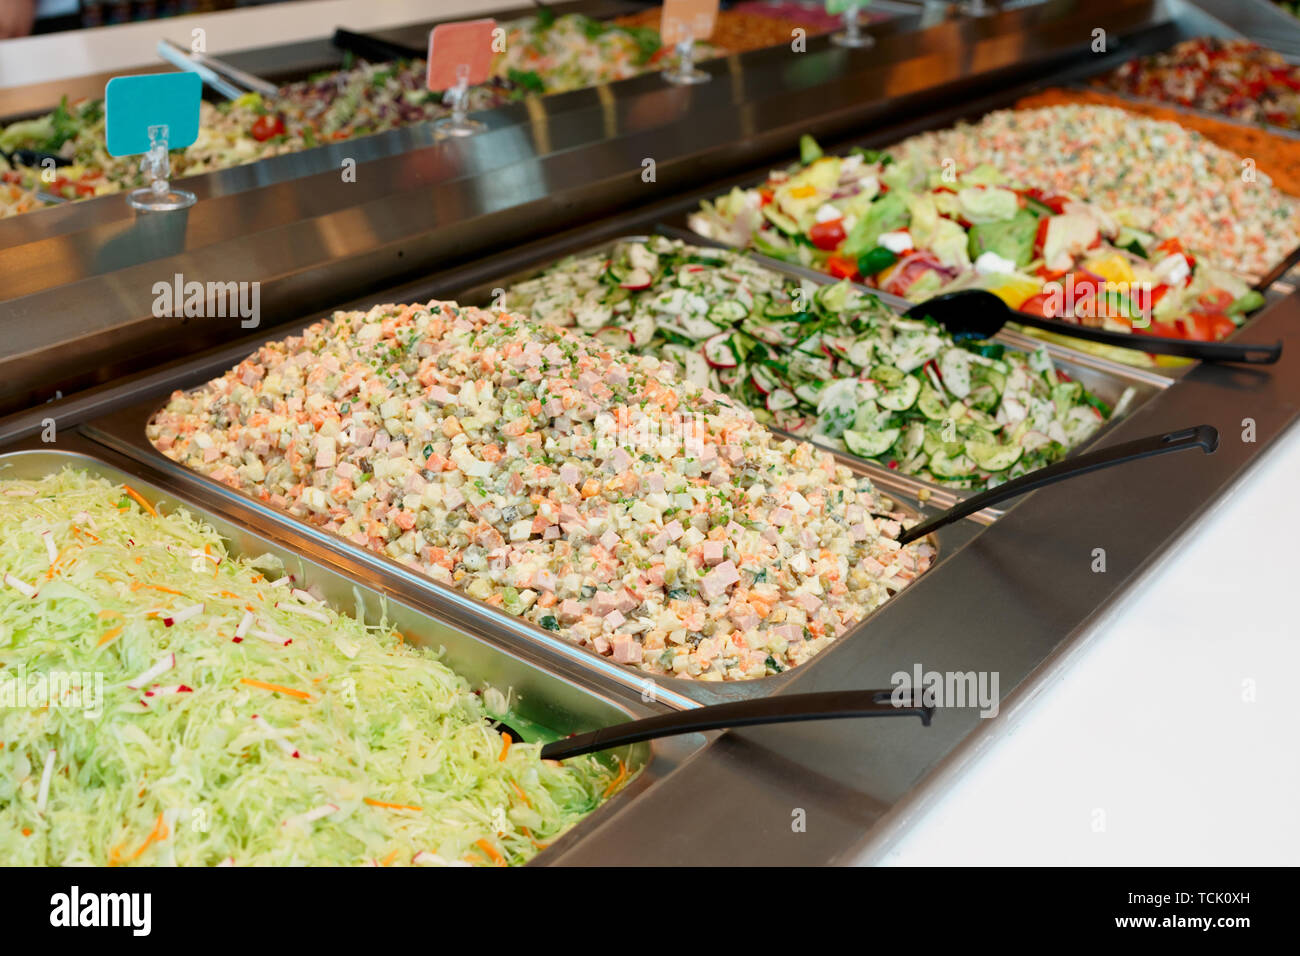 Self Service Salad Bar Stock Photos Amp Self Service Salad